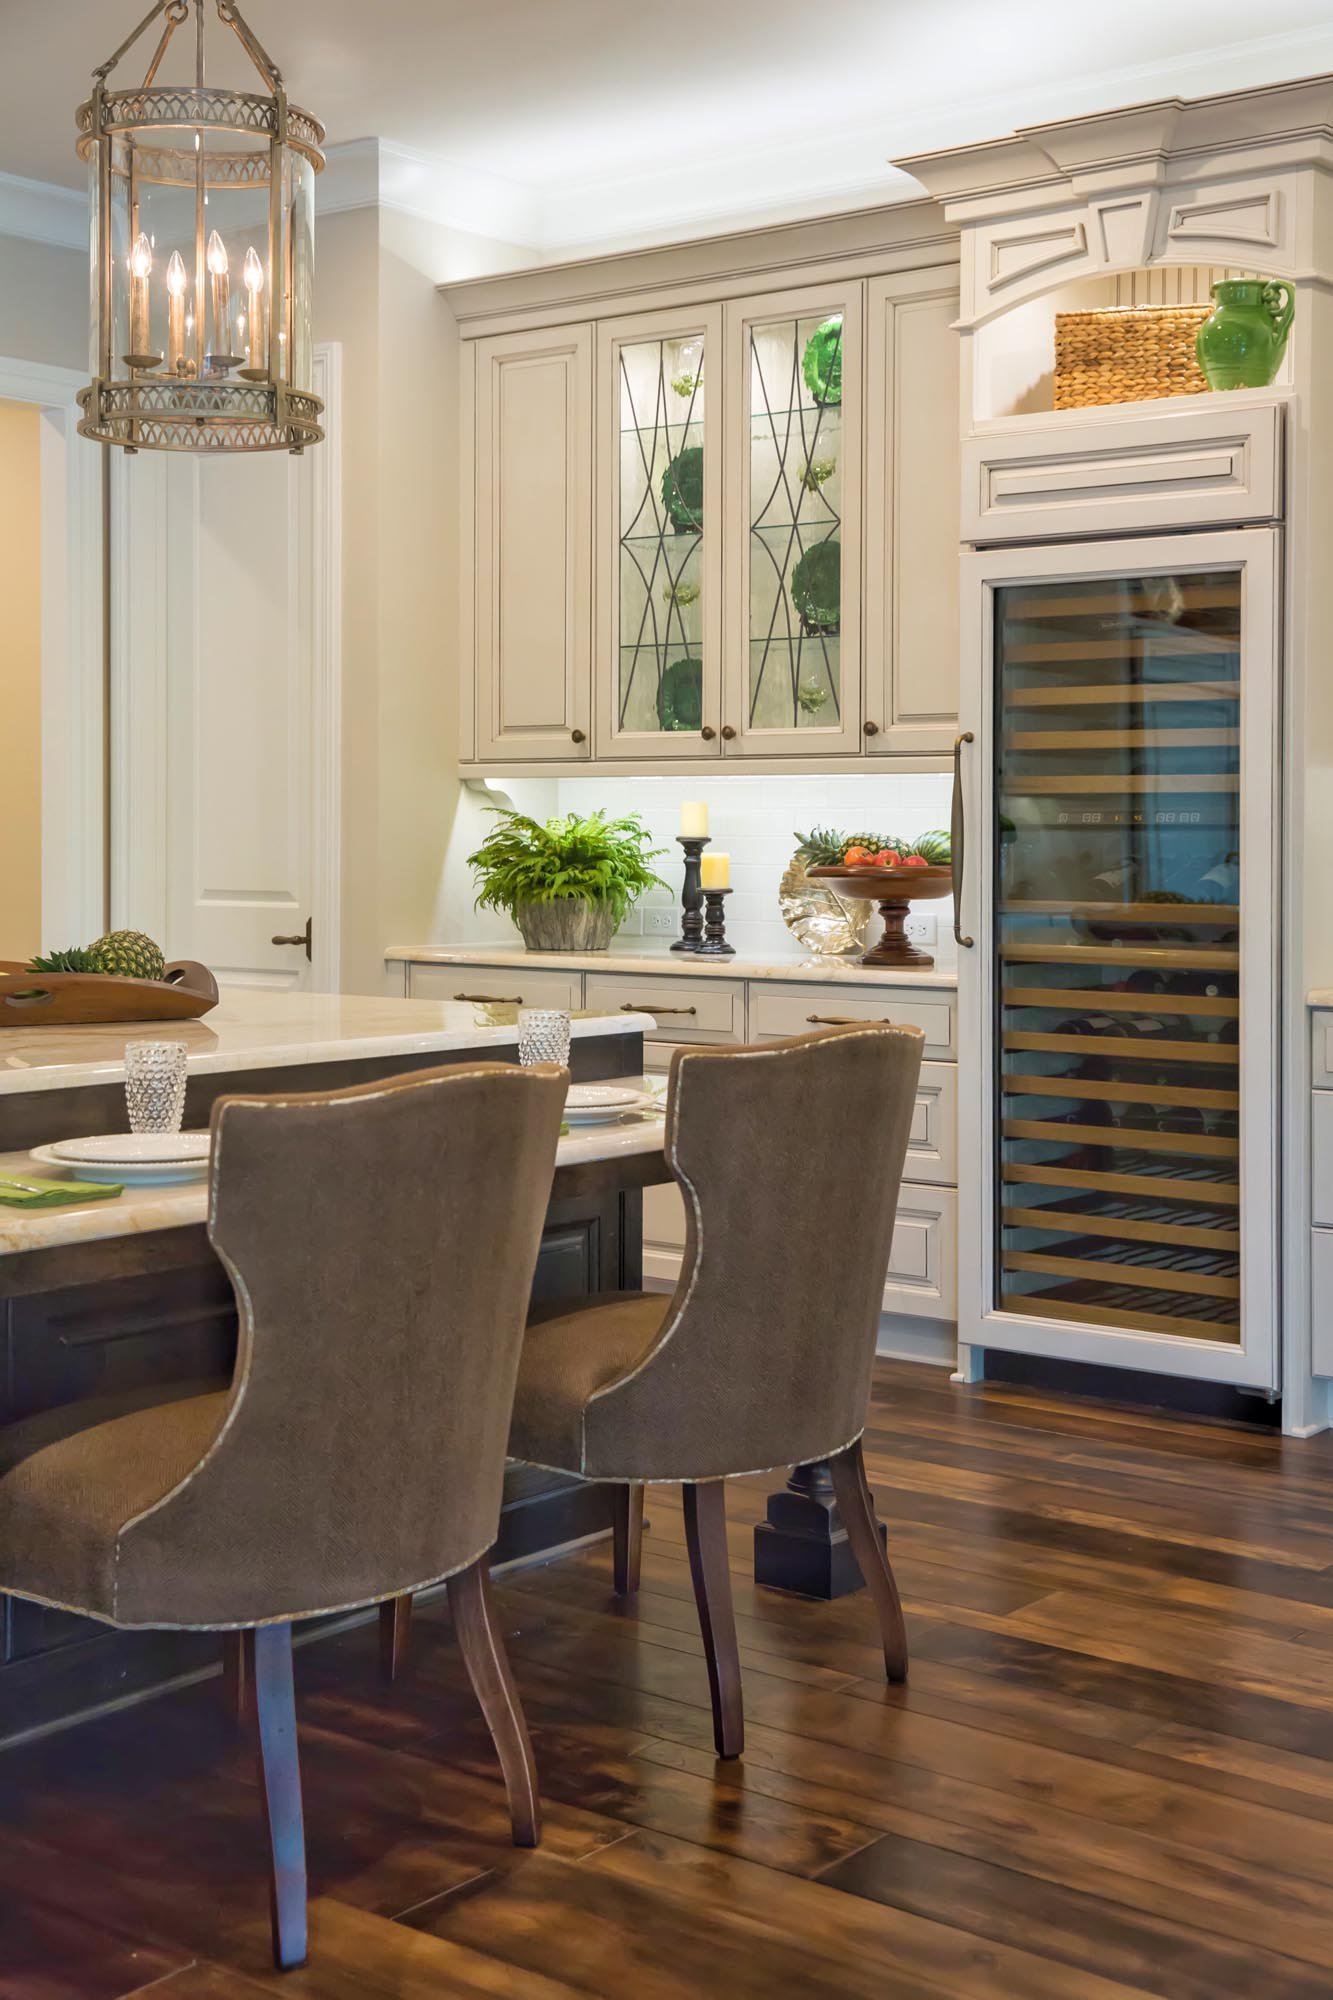 Cream traditional kitchen with counter chairs and wine refrigerator